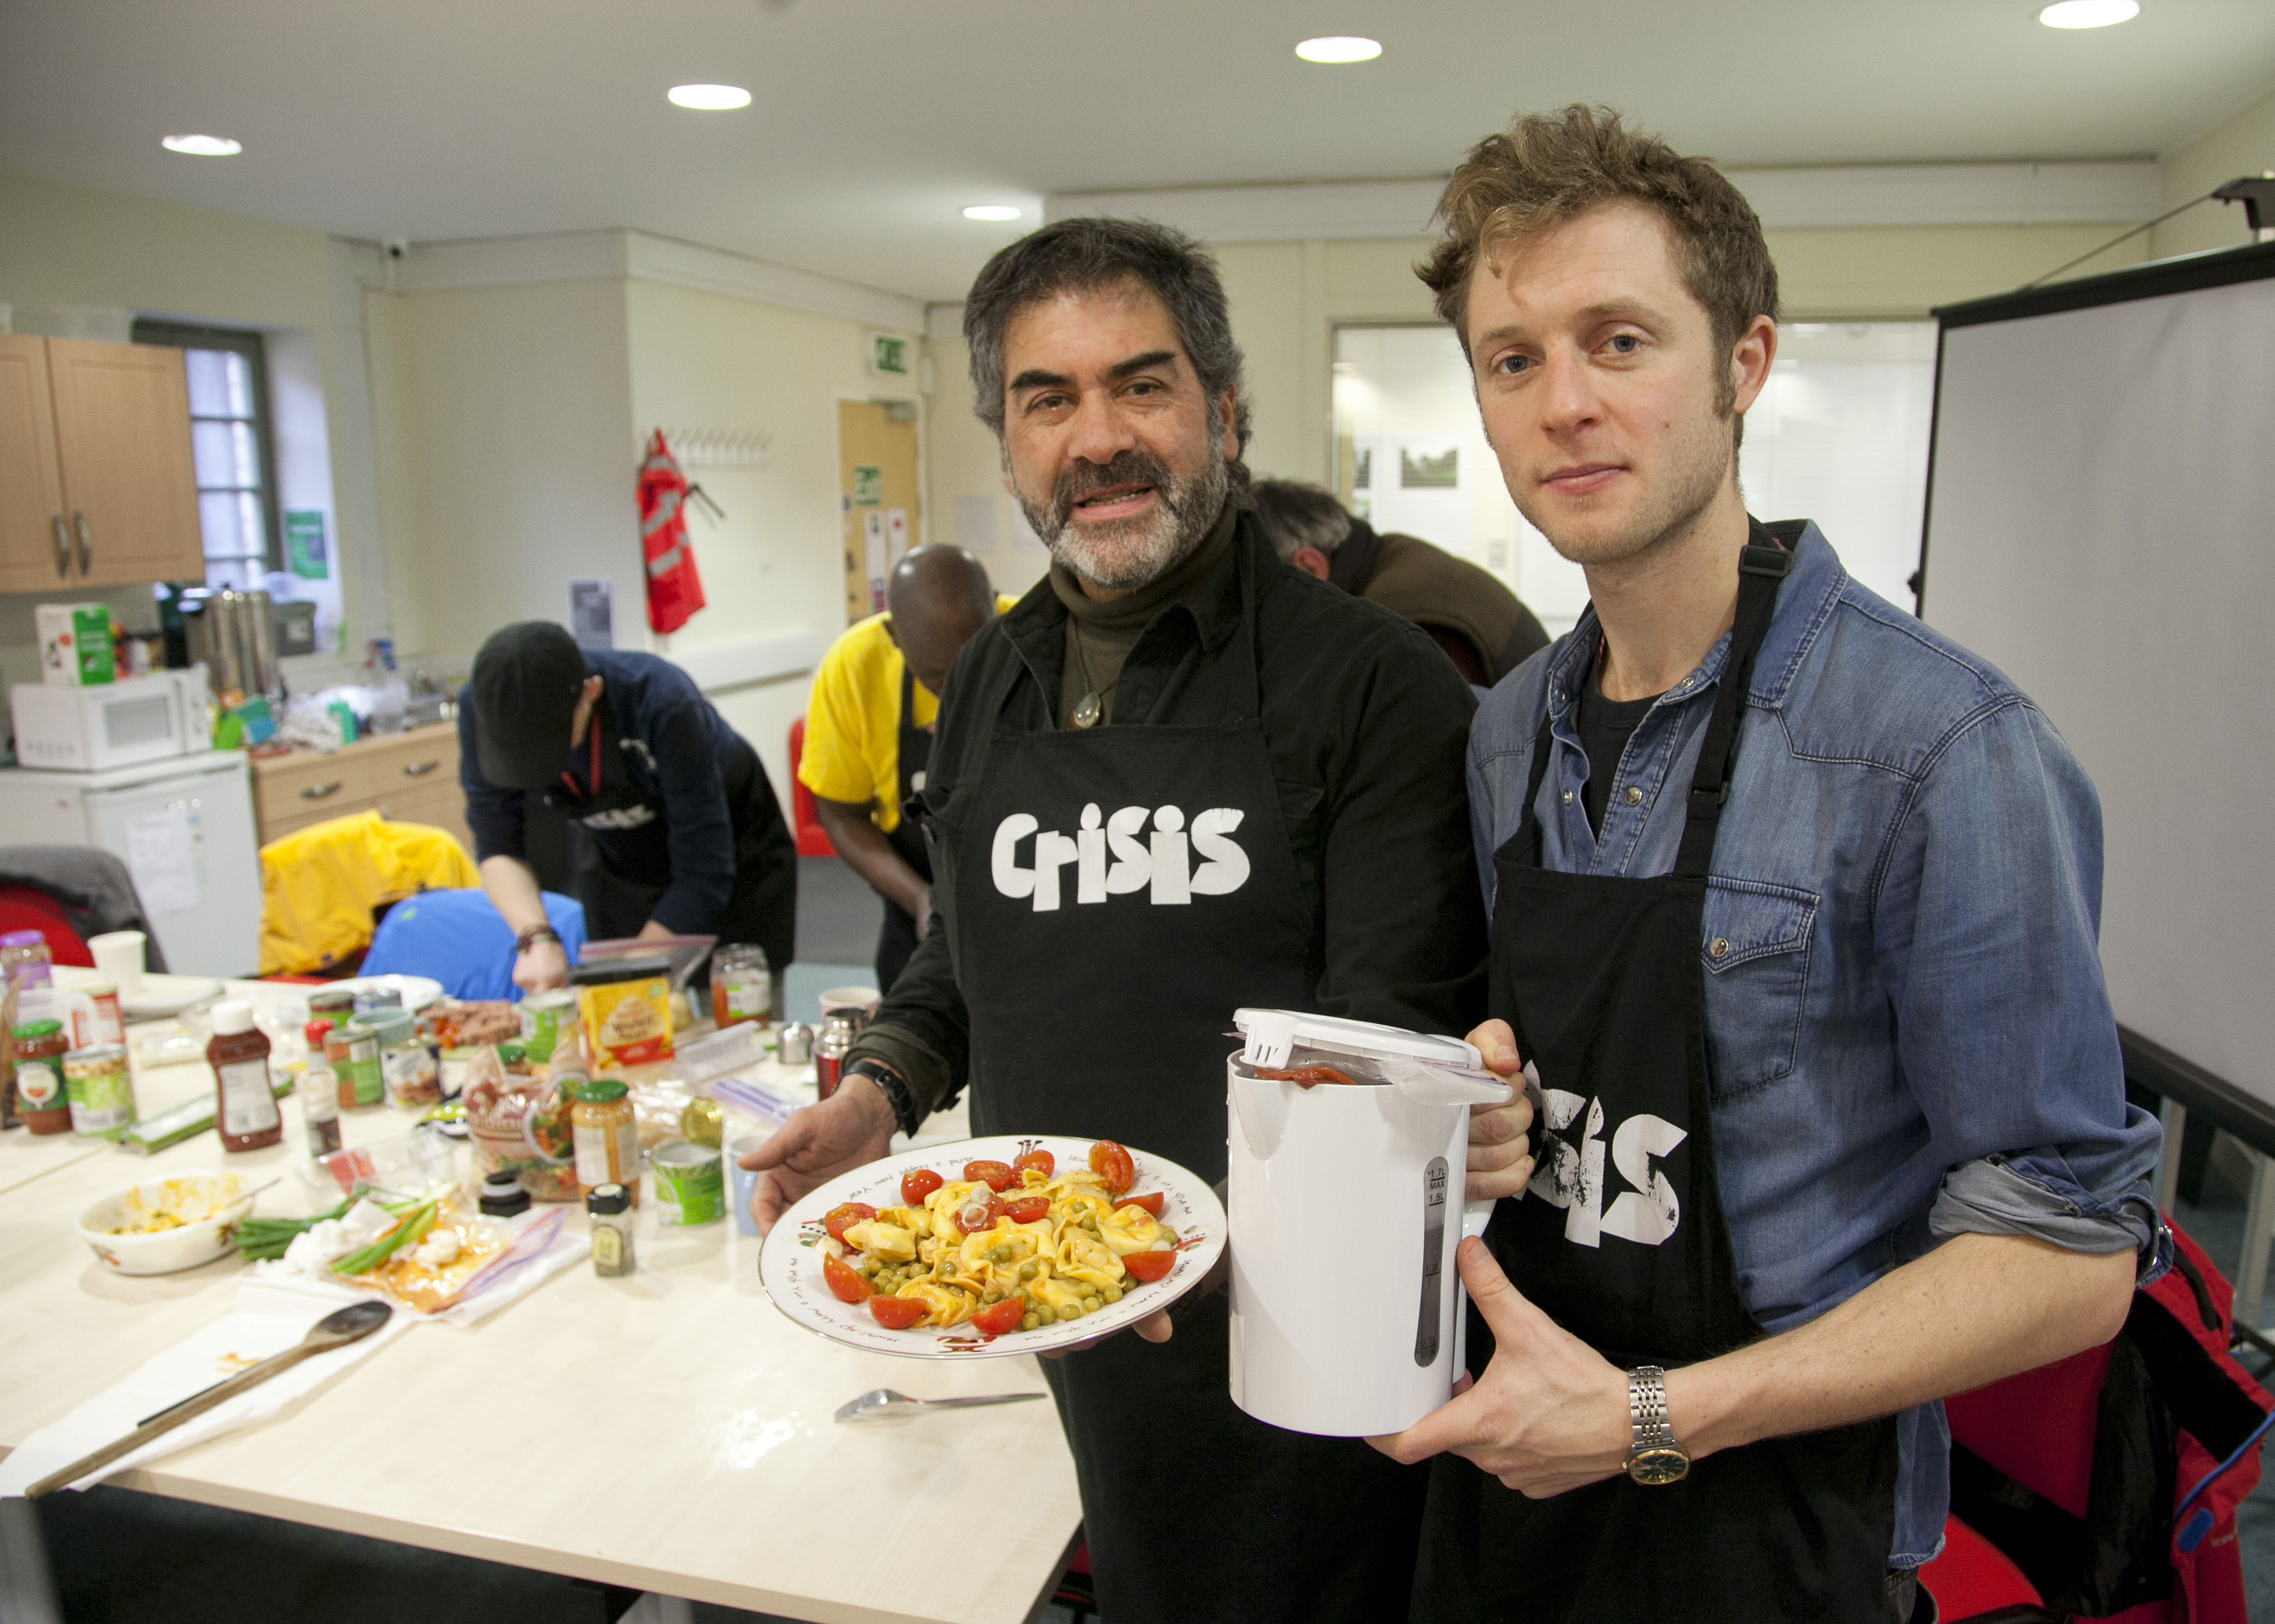 Will Golding, of homeless charity Crisis, on right, with Roberto Ormino-Soto, who is living in temporary accommodation, at a kettle-cooking class (Alistair Linford)